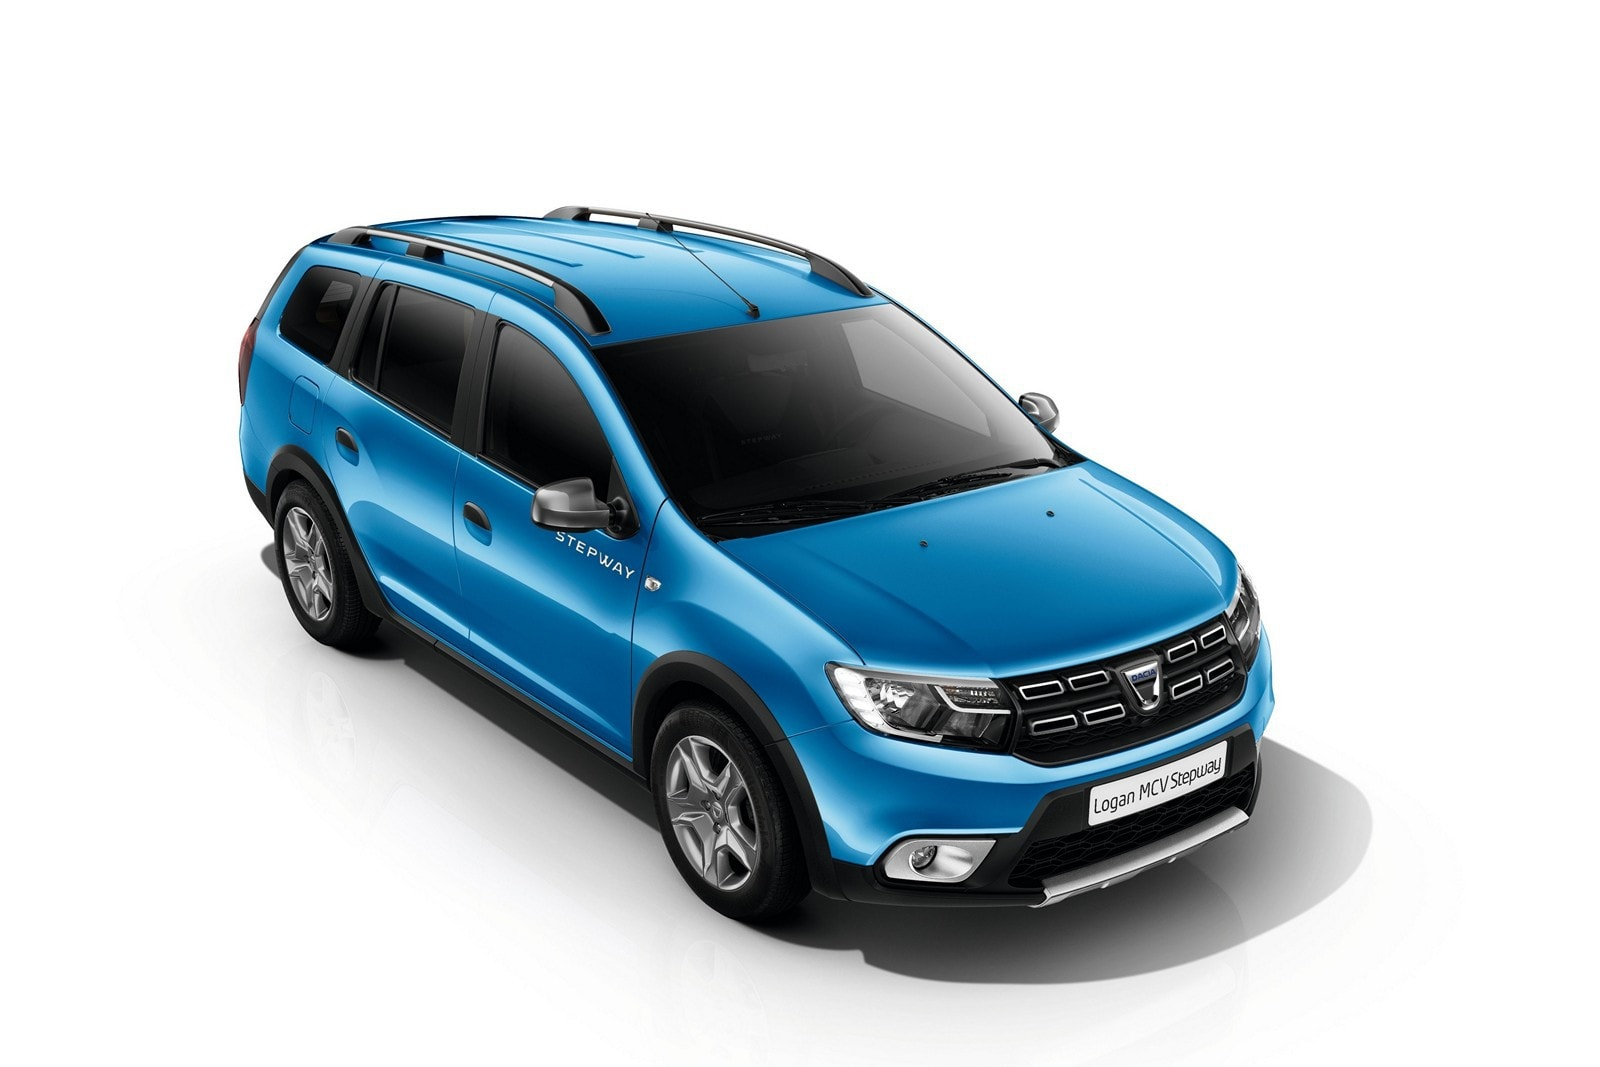 nov dacia logan mcv stepway 2017 rumunsk scout p ich z magaz n. Black Bedroom Furniture Sets. Home Design Ideas